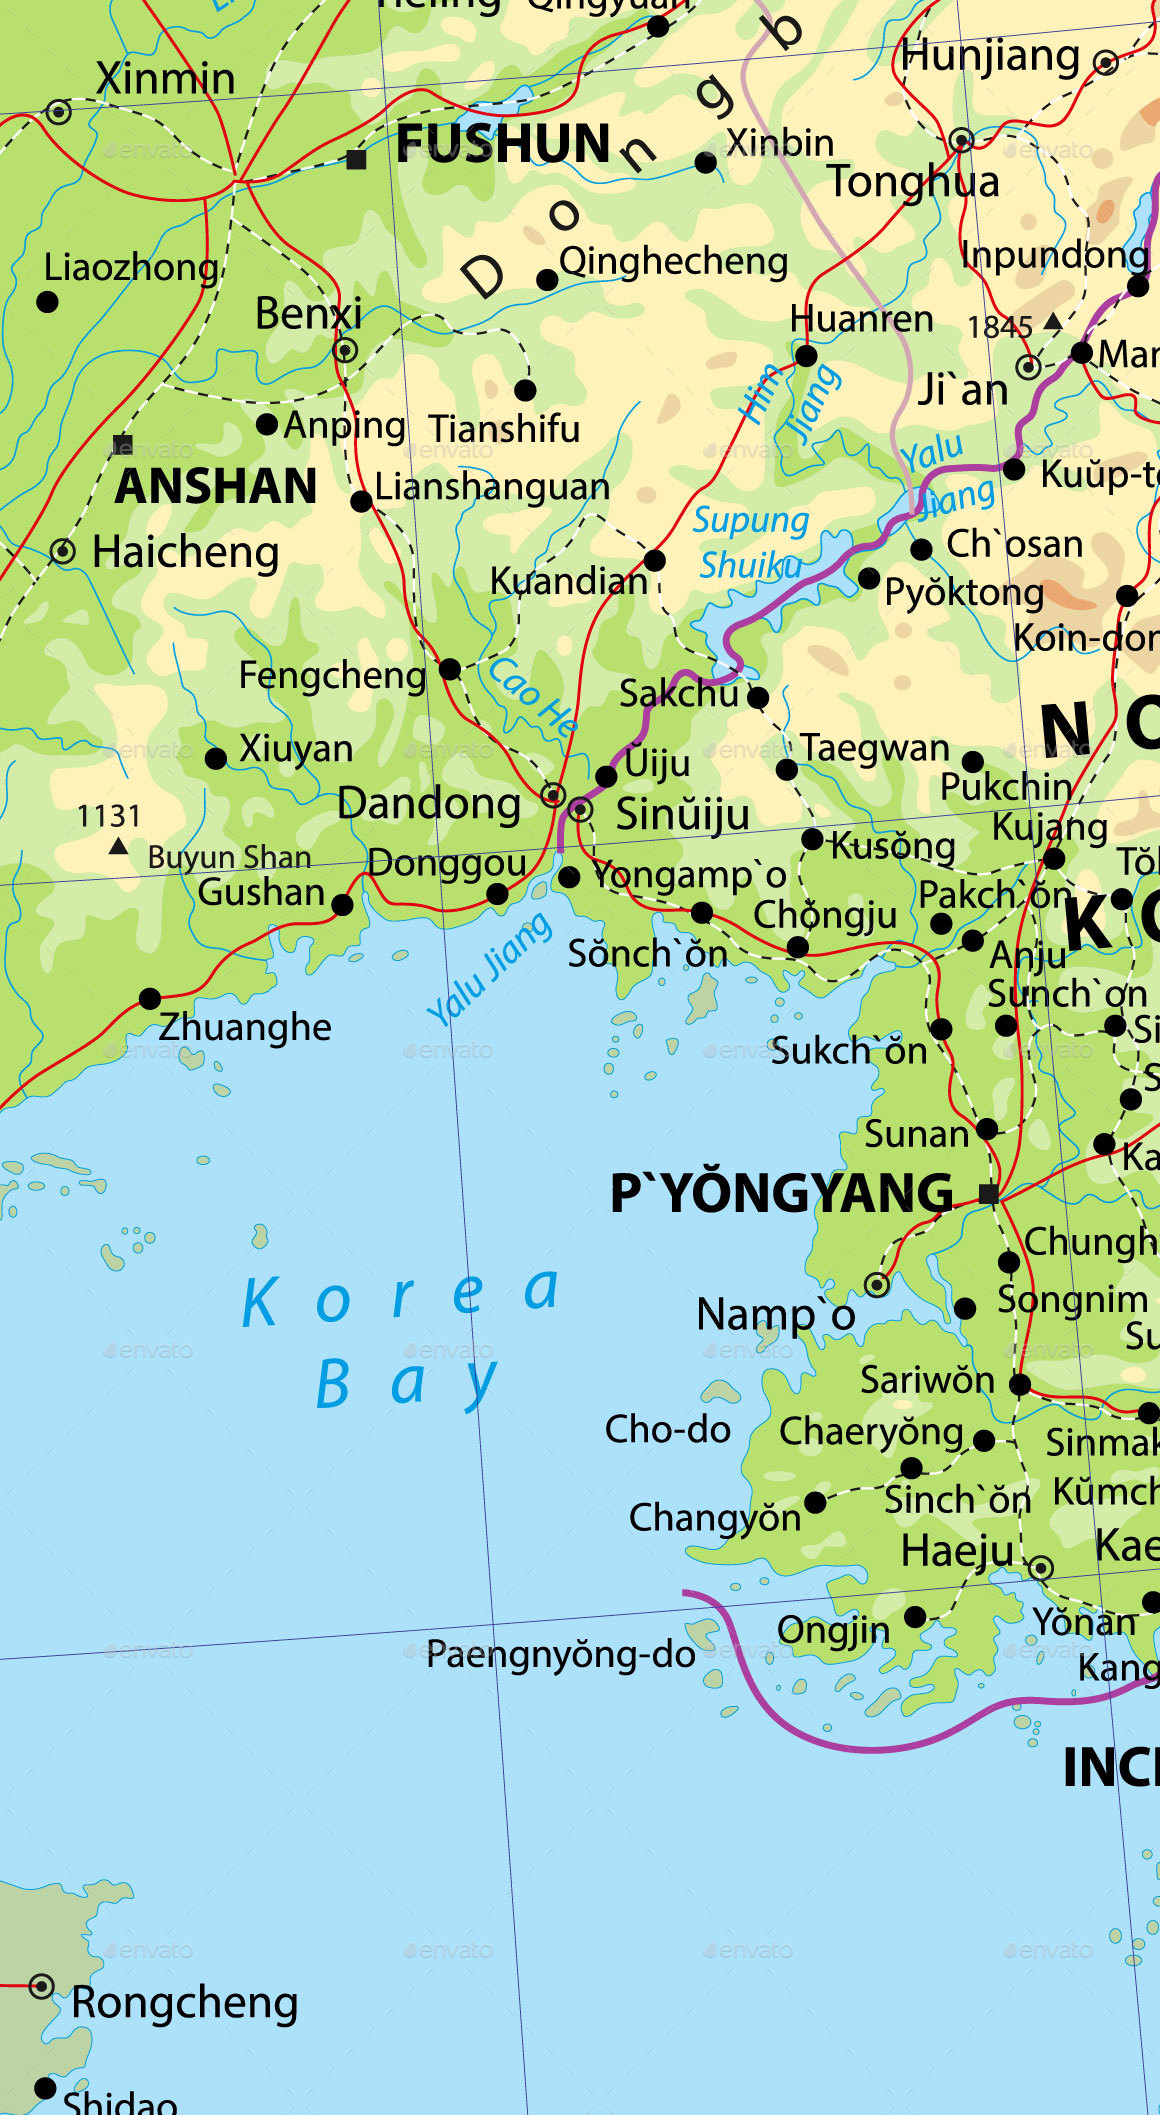 Korean Peninsula Physical Map by Cartarium | GraphicRiver